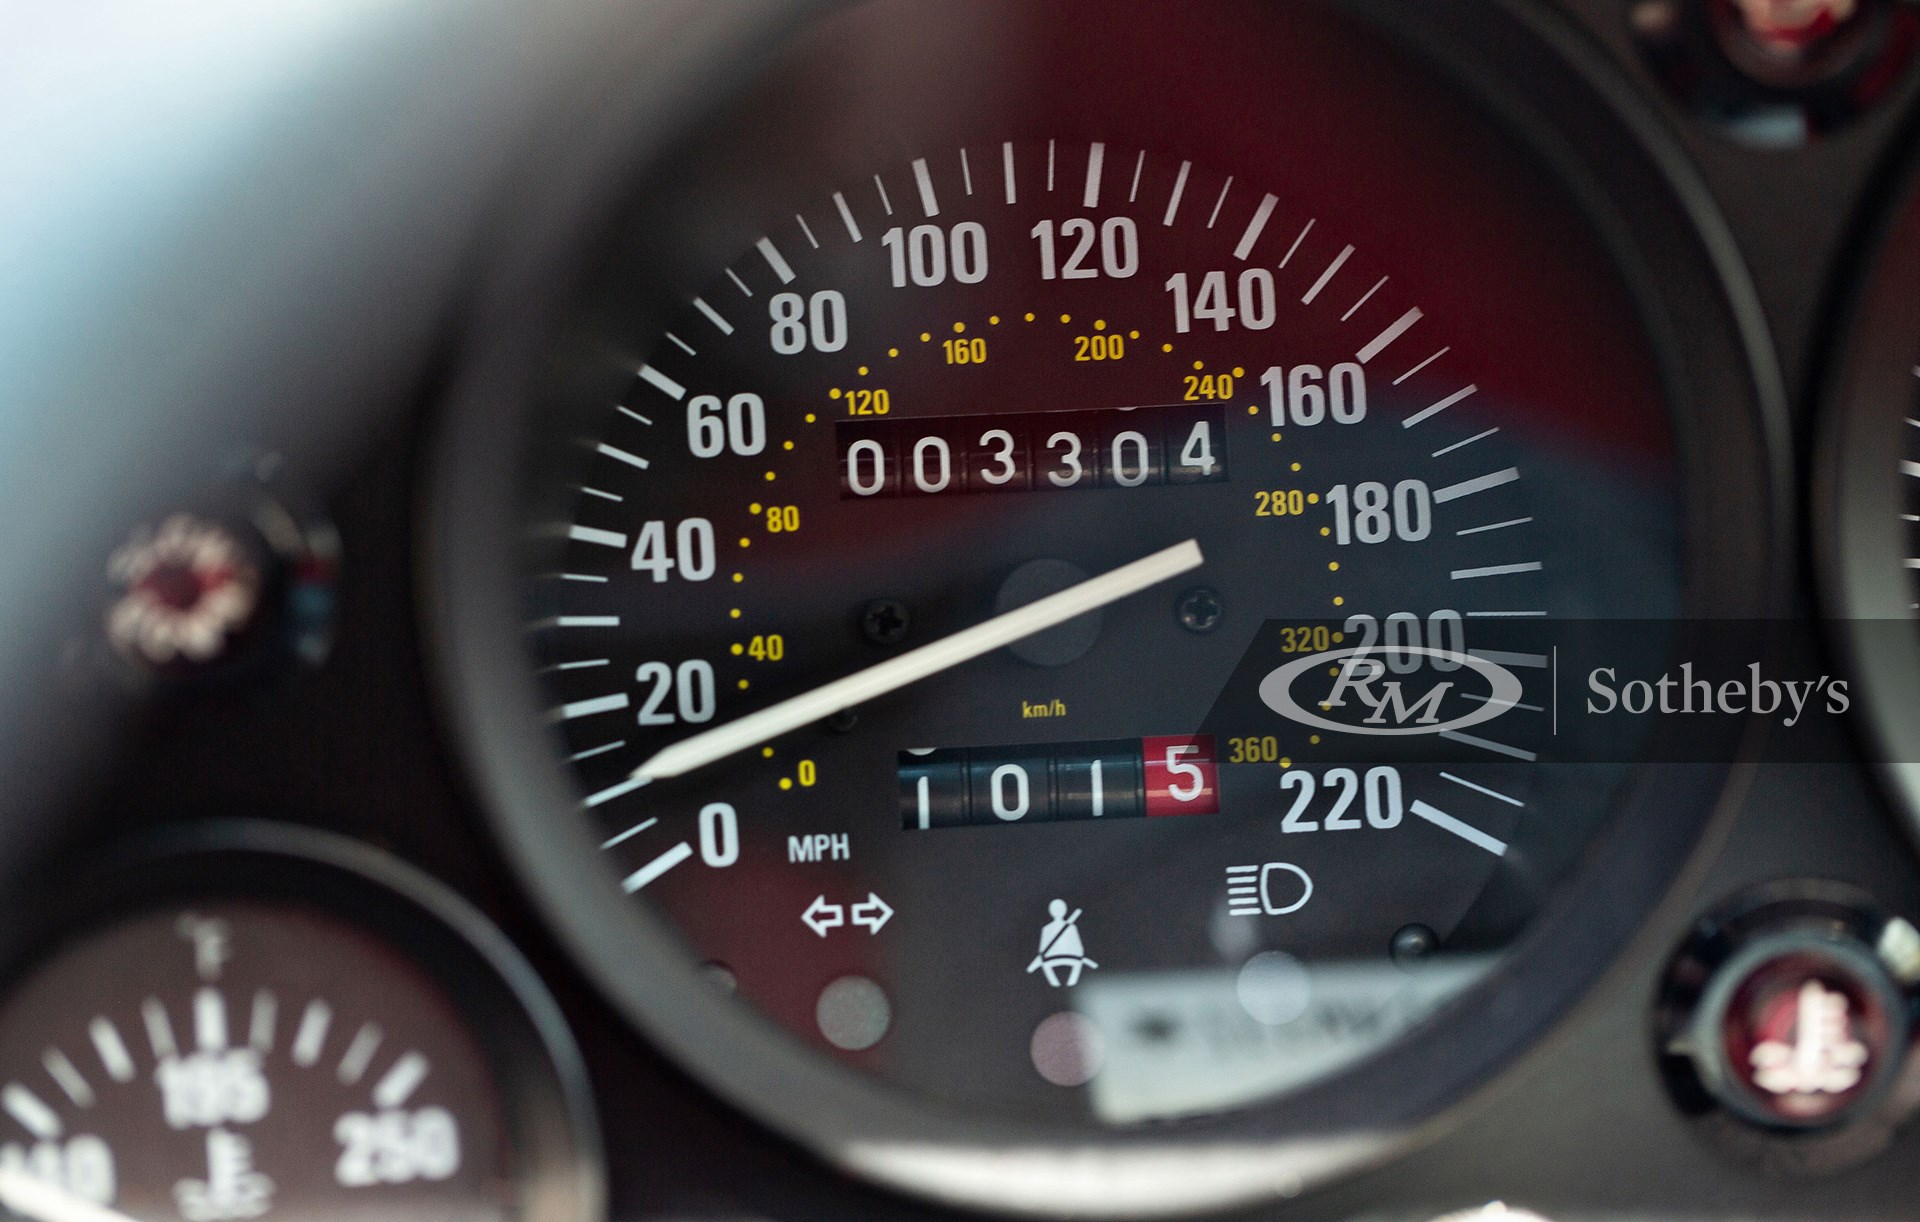 Odometer of the 1992 Ferrari F40 available at RM Sotheby's Amelia Island Live Auction 2021